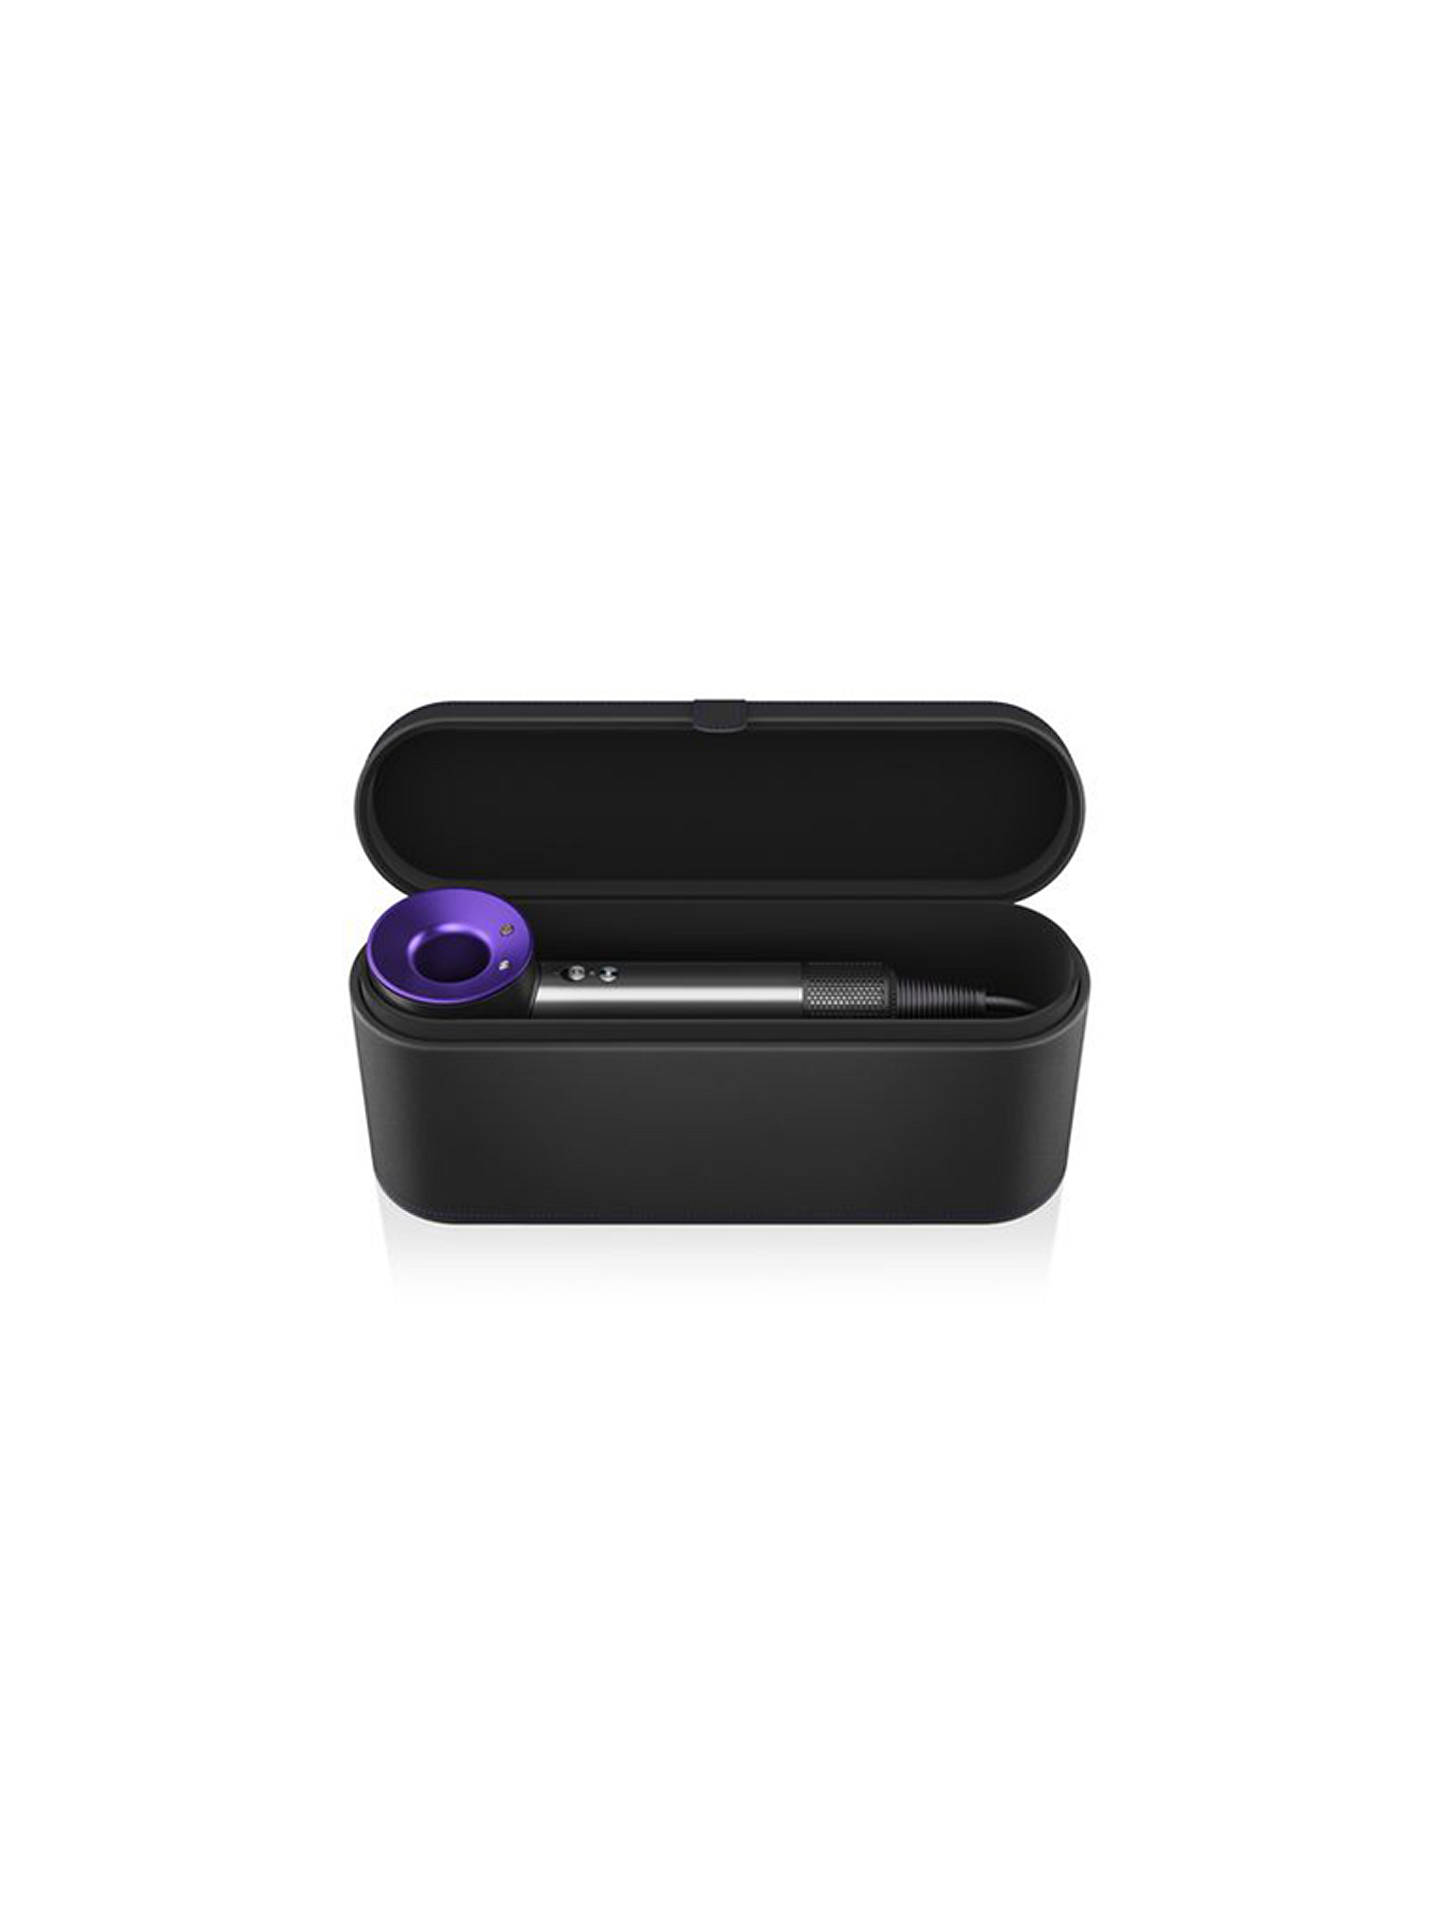 BuyDyson Supersonic™ Special Edition Hair Dryer with Presentation Box, Black/Purple Online at johnlewis.com